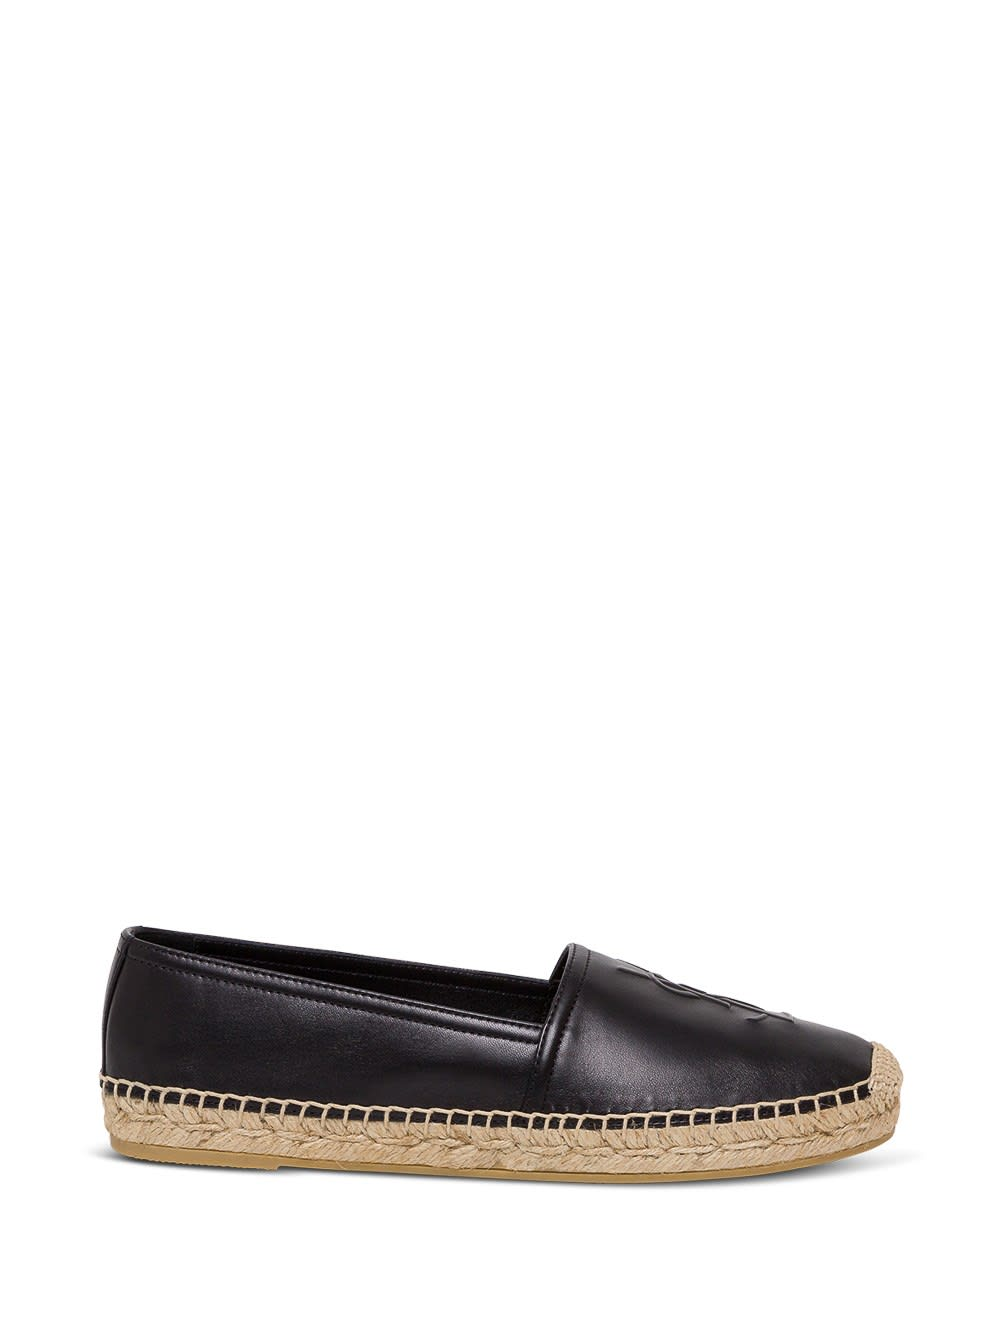 Saint Laurent FLAT HEEL LEATHER UP ESPADRILLAS